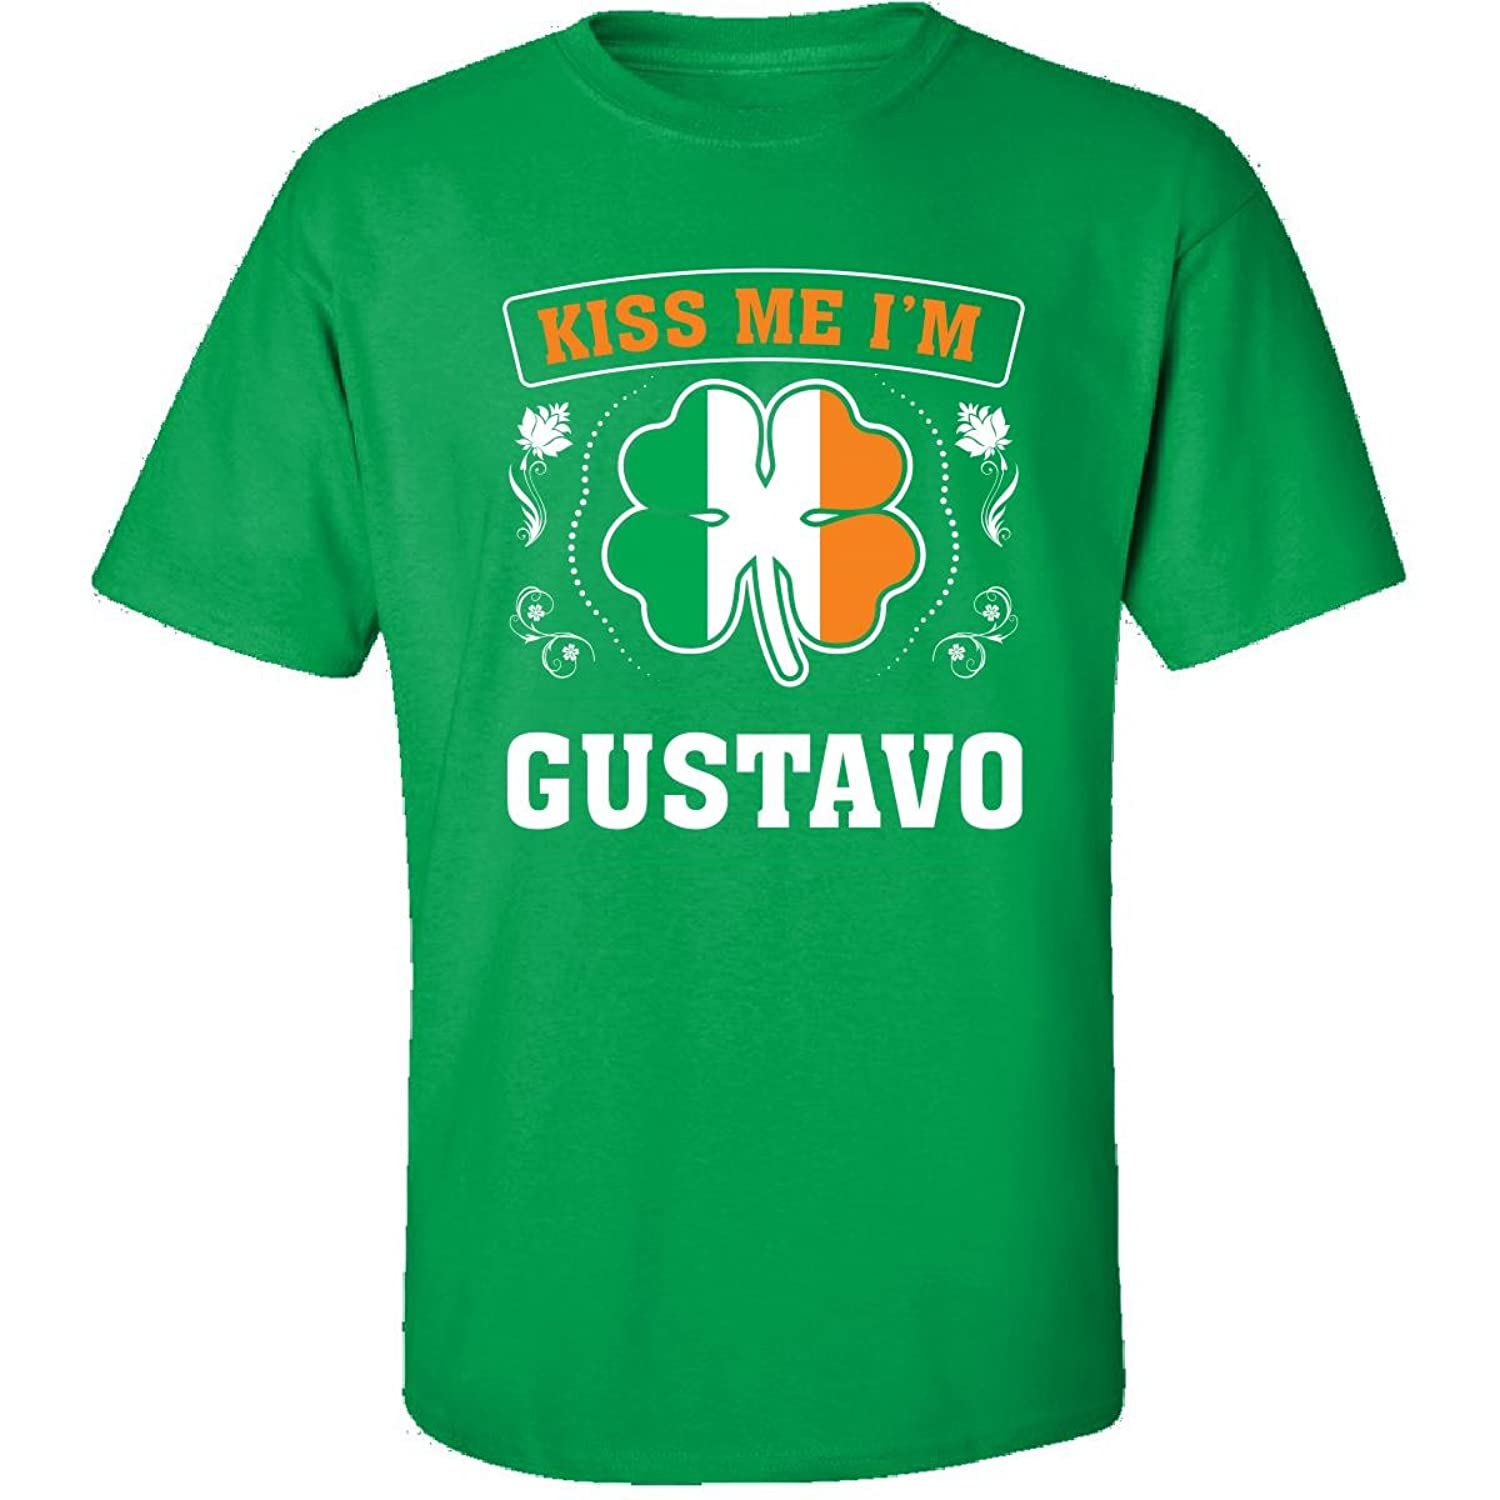 Kiss Me Im Gustavo And Irish St Patricks Day Gift - Adult Shirt